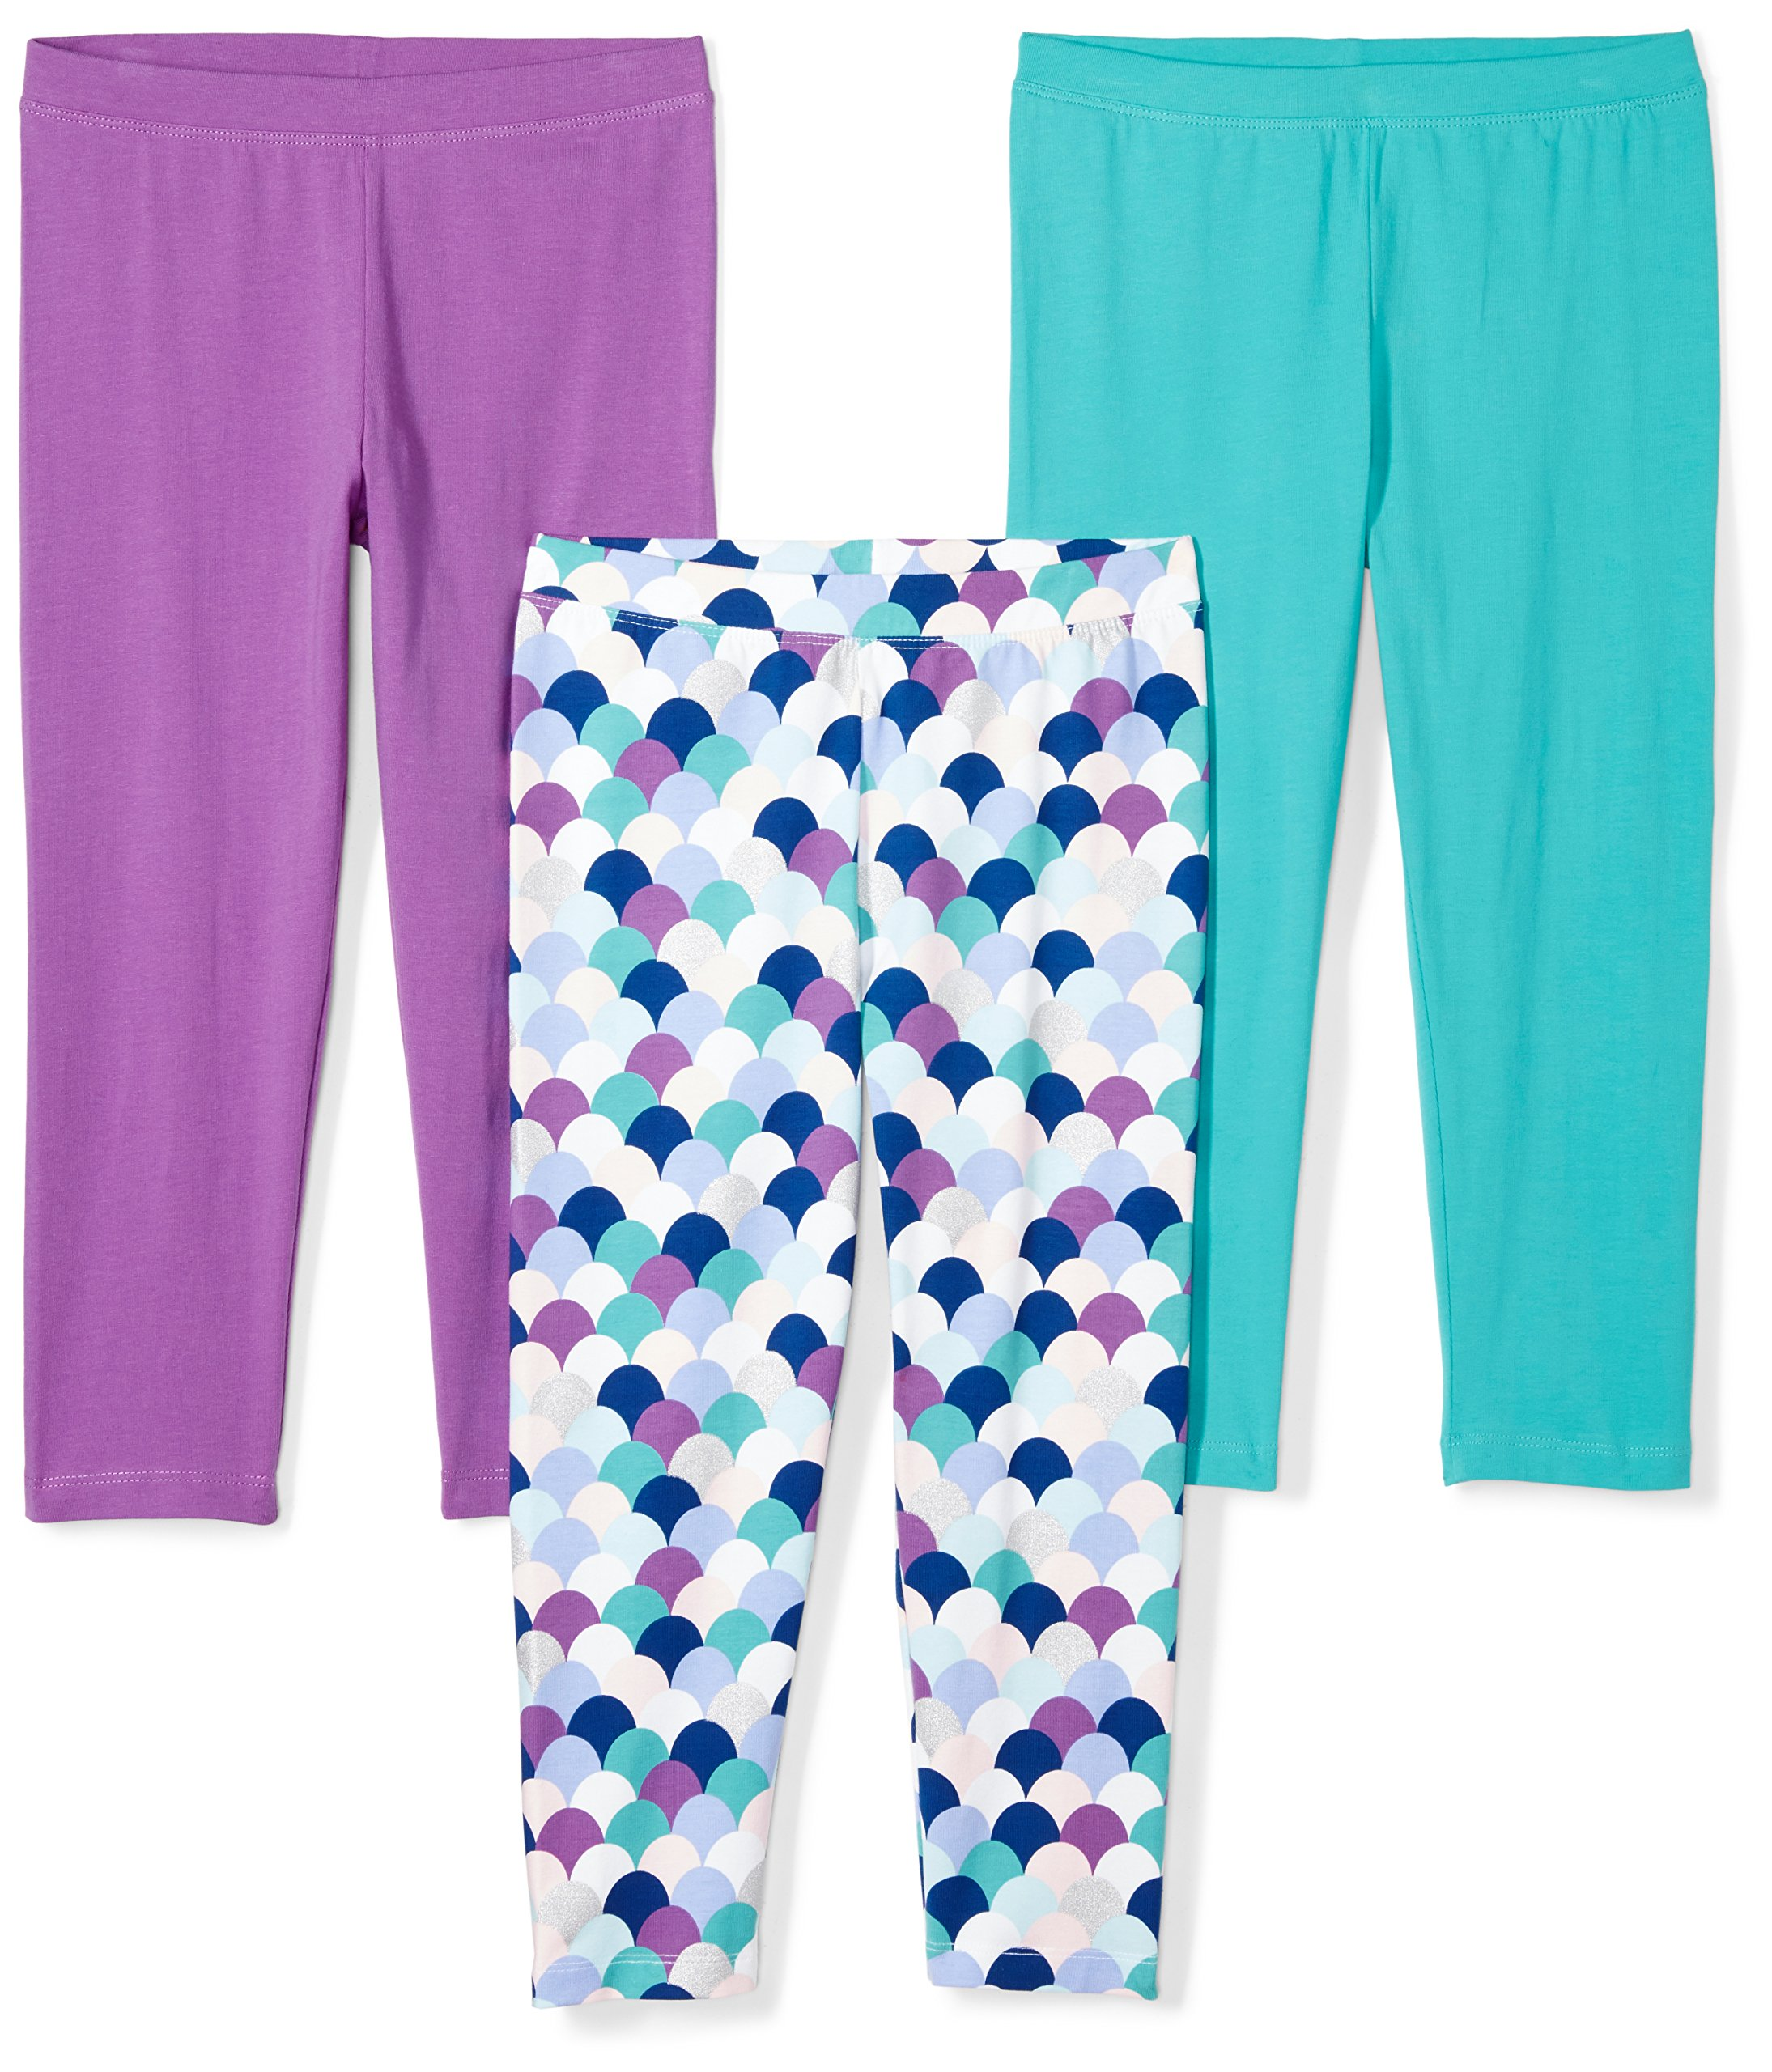 Spotted Zebra Girls' Big 3-Pack Capri Leggings, Mermaid, Medium (8) by Spotted Zebra